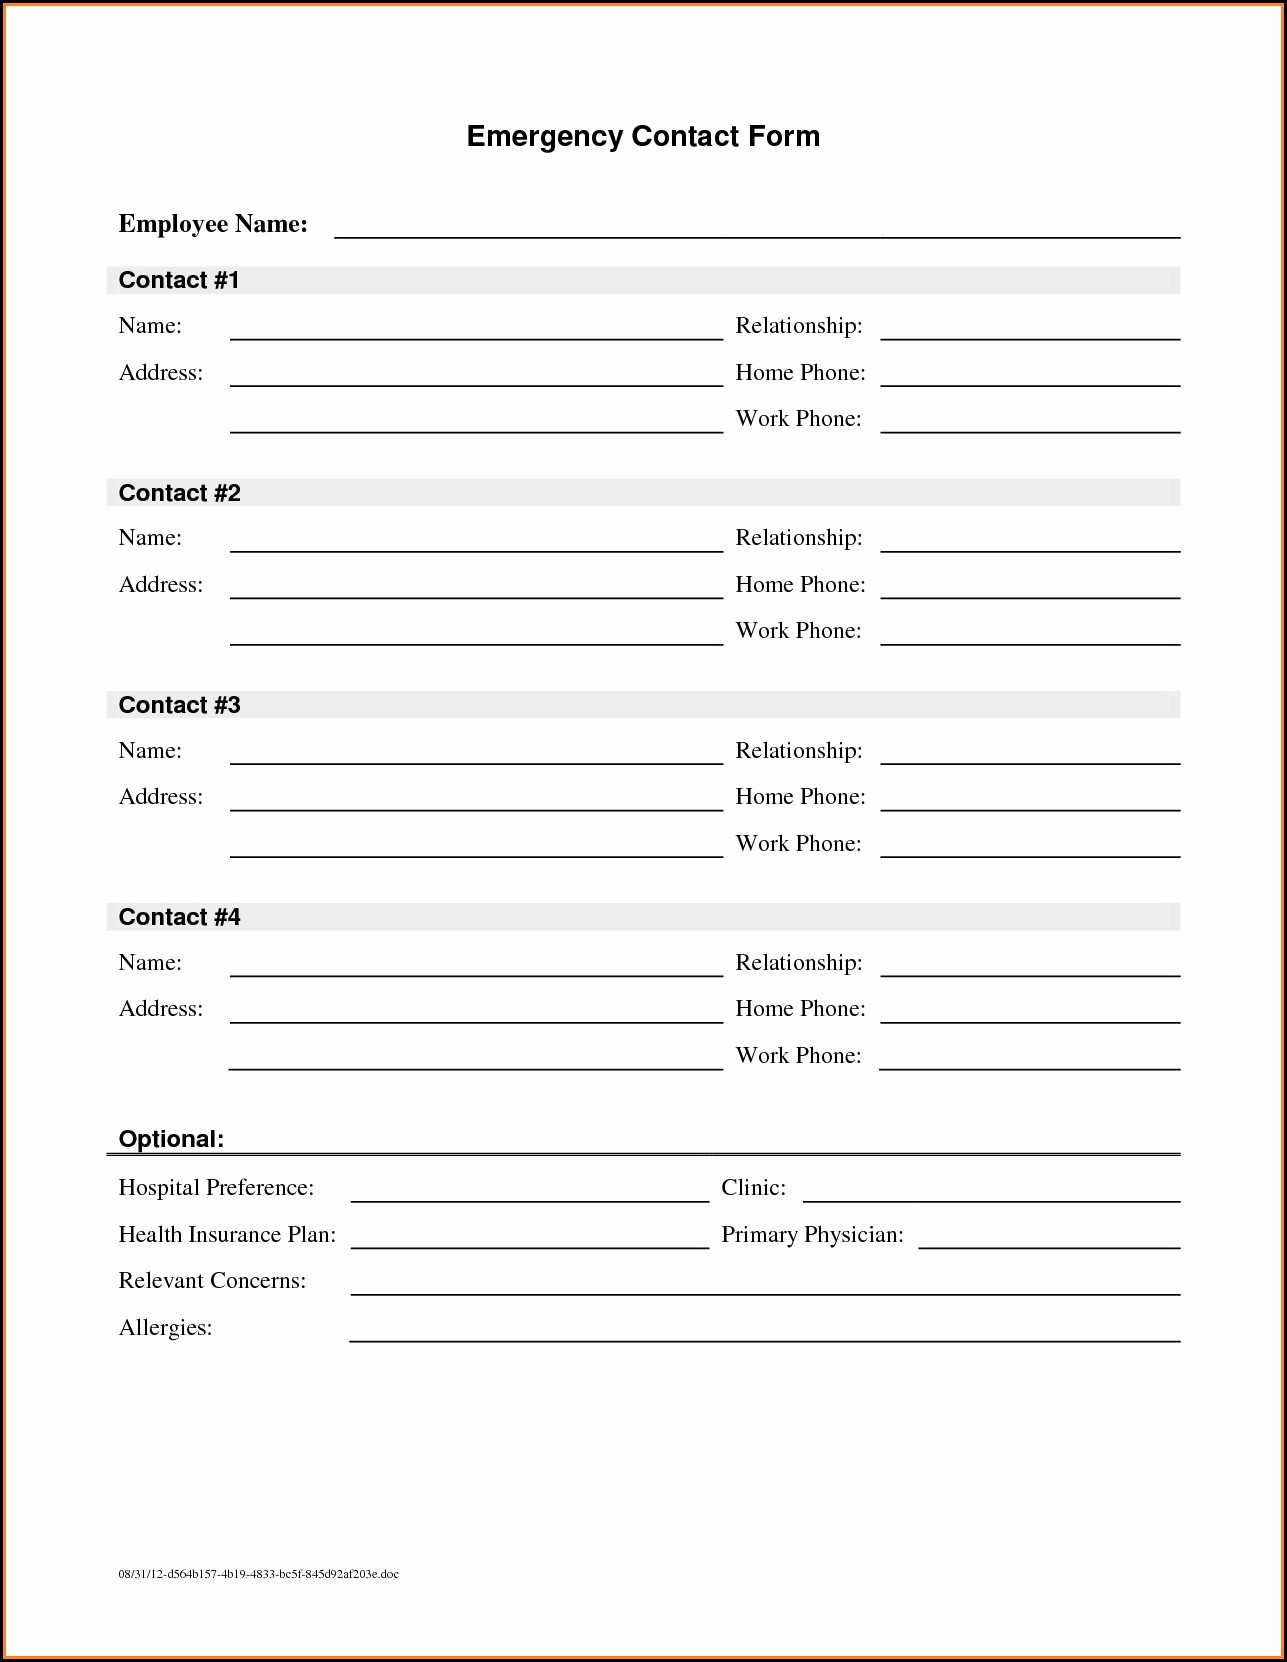 Medical Emergency Contact Form Template